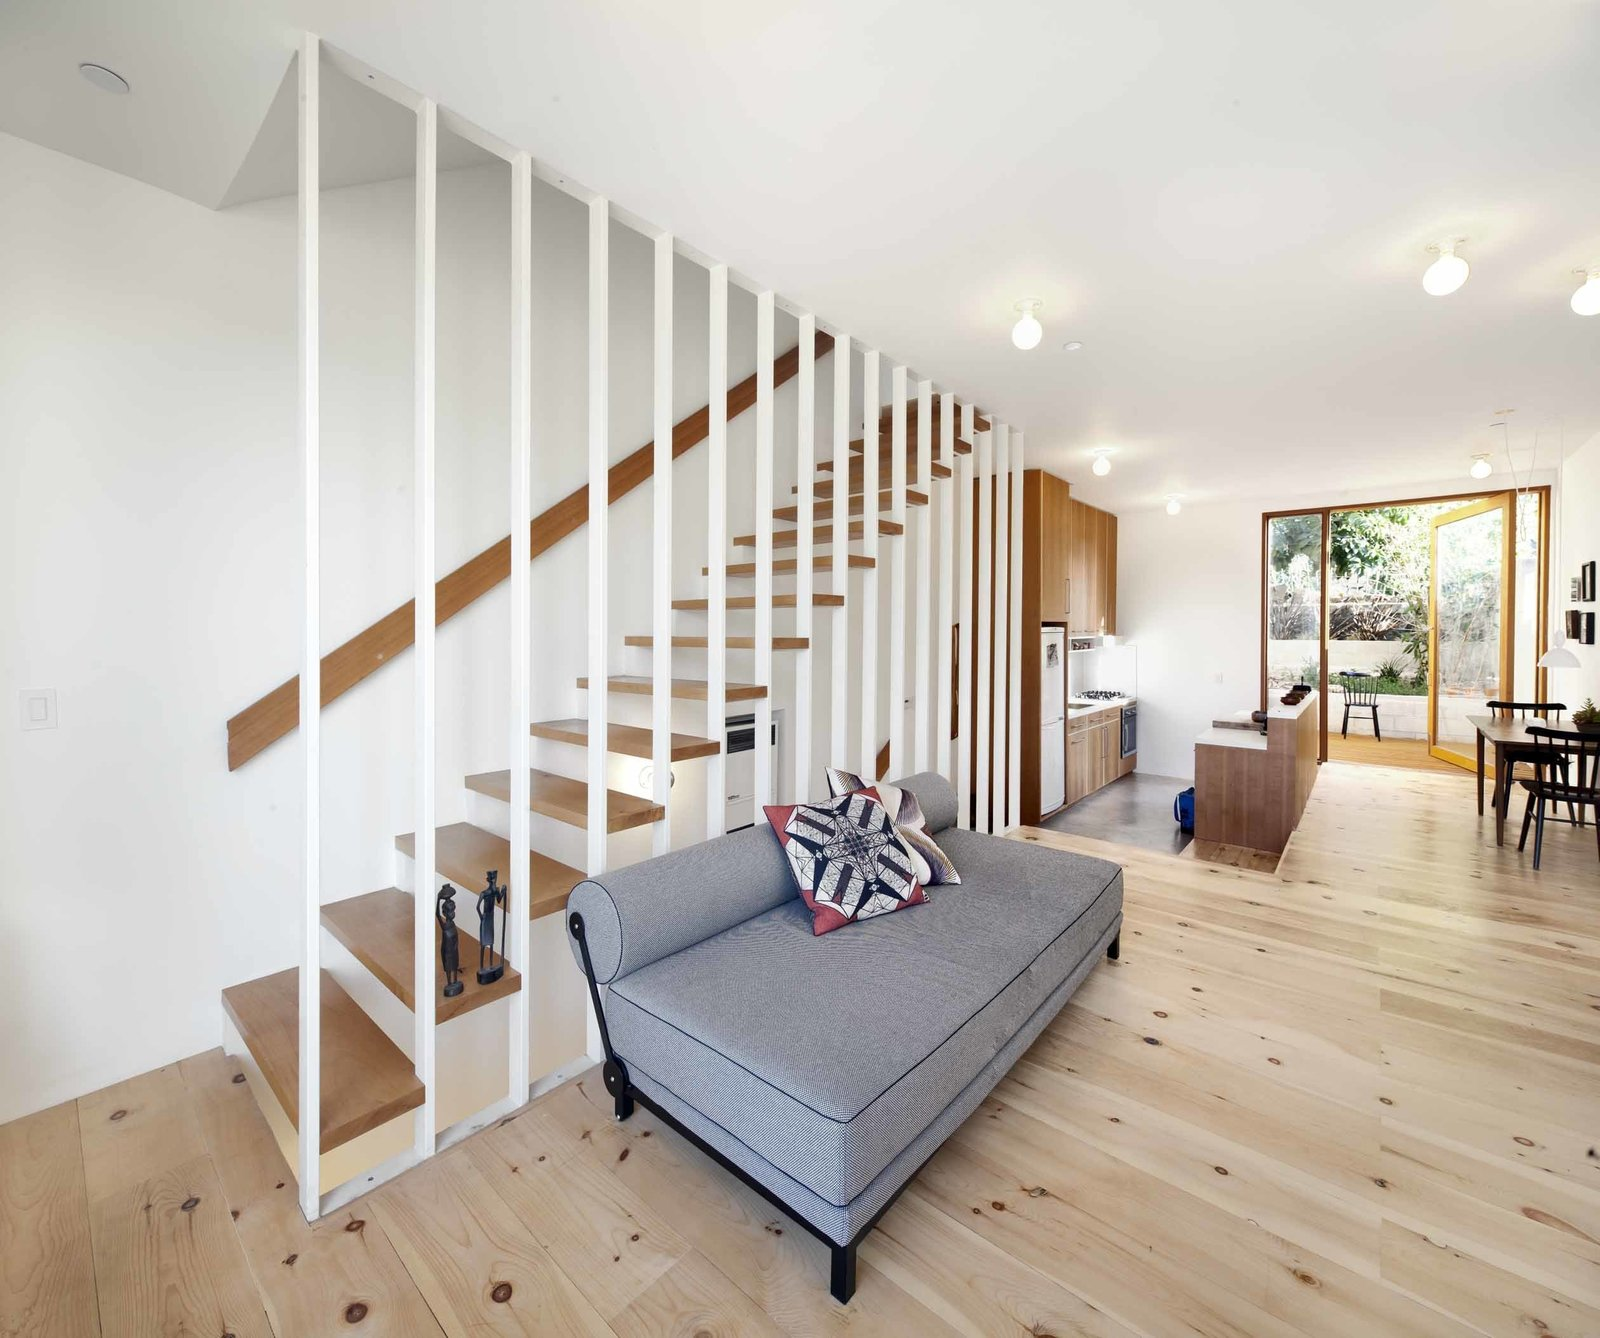 """The first floor contains the living room and kitchen, which opens out onto a petite back garden and an avocado tree. The kitchen is slightly sunken and has a polished concrete floor, which subtly demarcates it from the rest of the space. Materials in the kitchen set the home's material palette, with vertical Douglas fir cabinets and the same 3"""" x 6"""" subway tiles that appear in the bathroom for the backsplash. The Fisher & Paykel dishwasher is hidden inside the island: """"I wanted the island to look more like a credenza or piece of furniture,"""" says Storey.  The wood floor boards in the living room are white pine, a soft wood Storey chose for its knotty look. """"The wood dries a lot over time, so small gaps have opened up between them. Because it's such a simple white space, it's nice to have that rough warmth and character in the floors."""""""